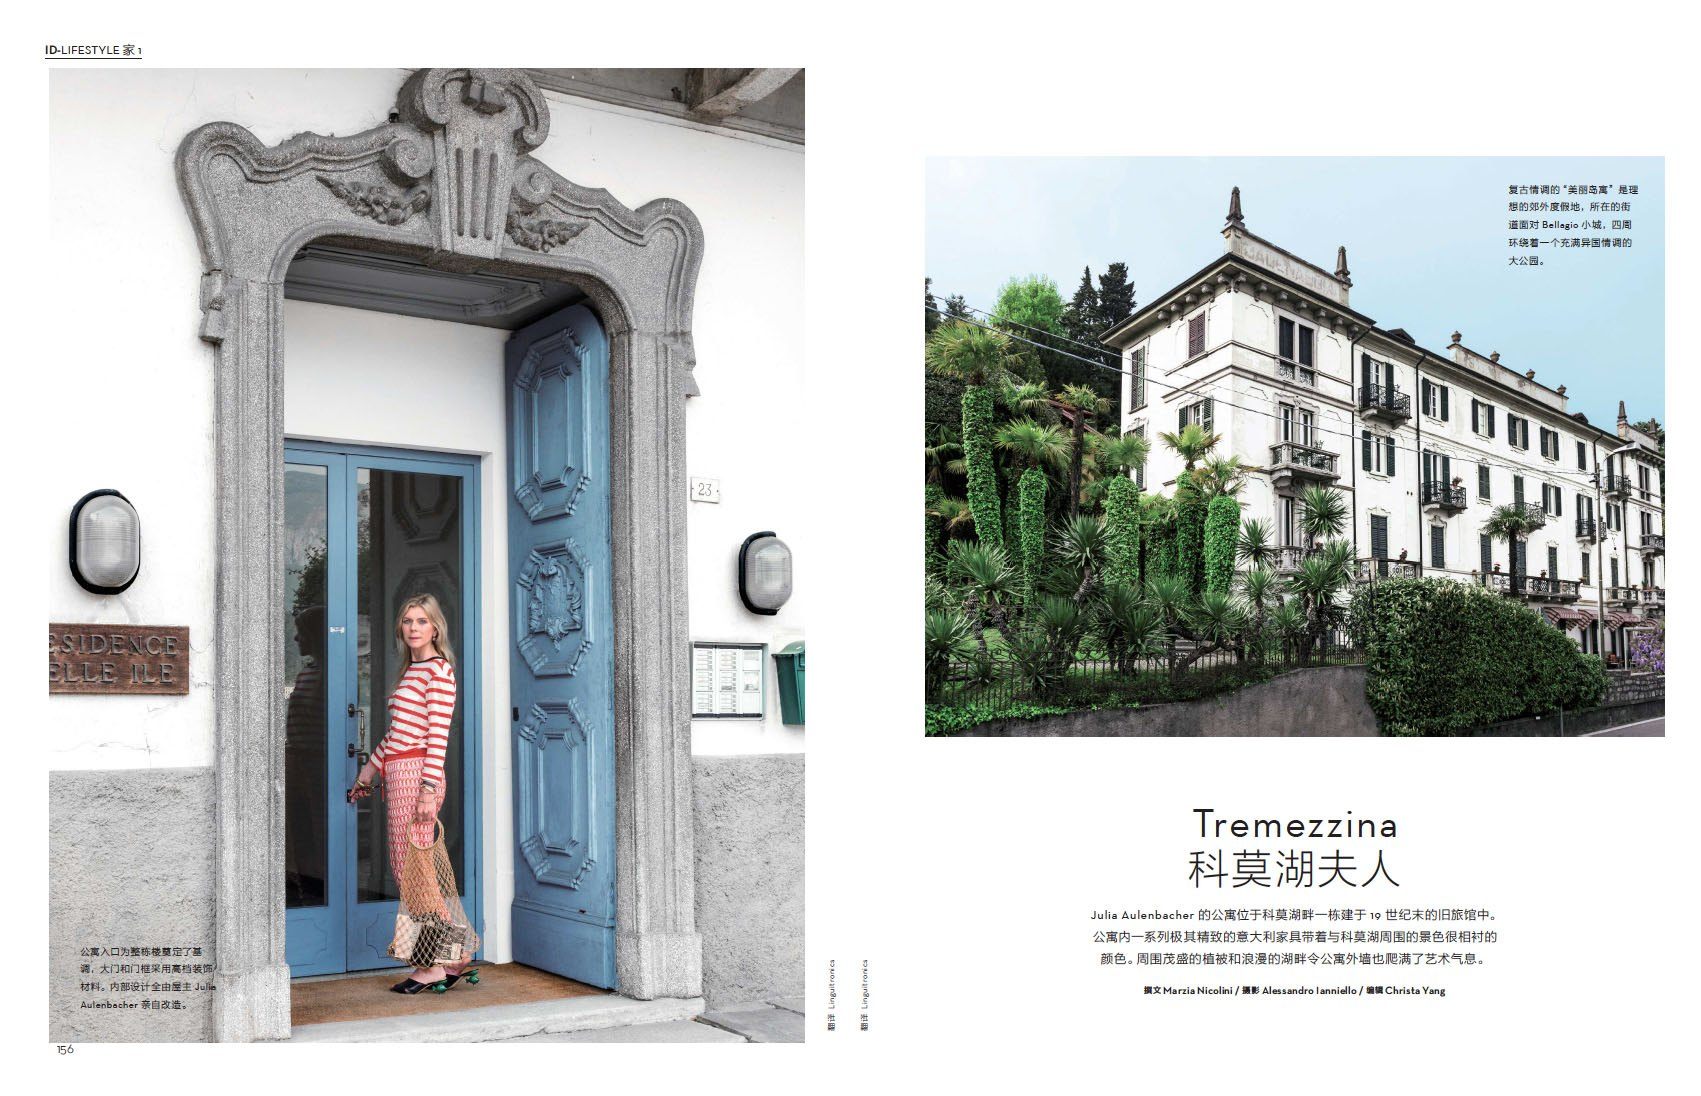 Julia Aulenbacher - Interiors +++ IDEAT China Double 1